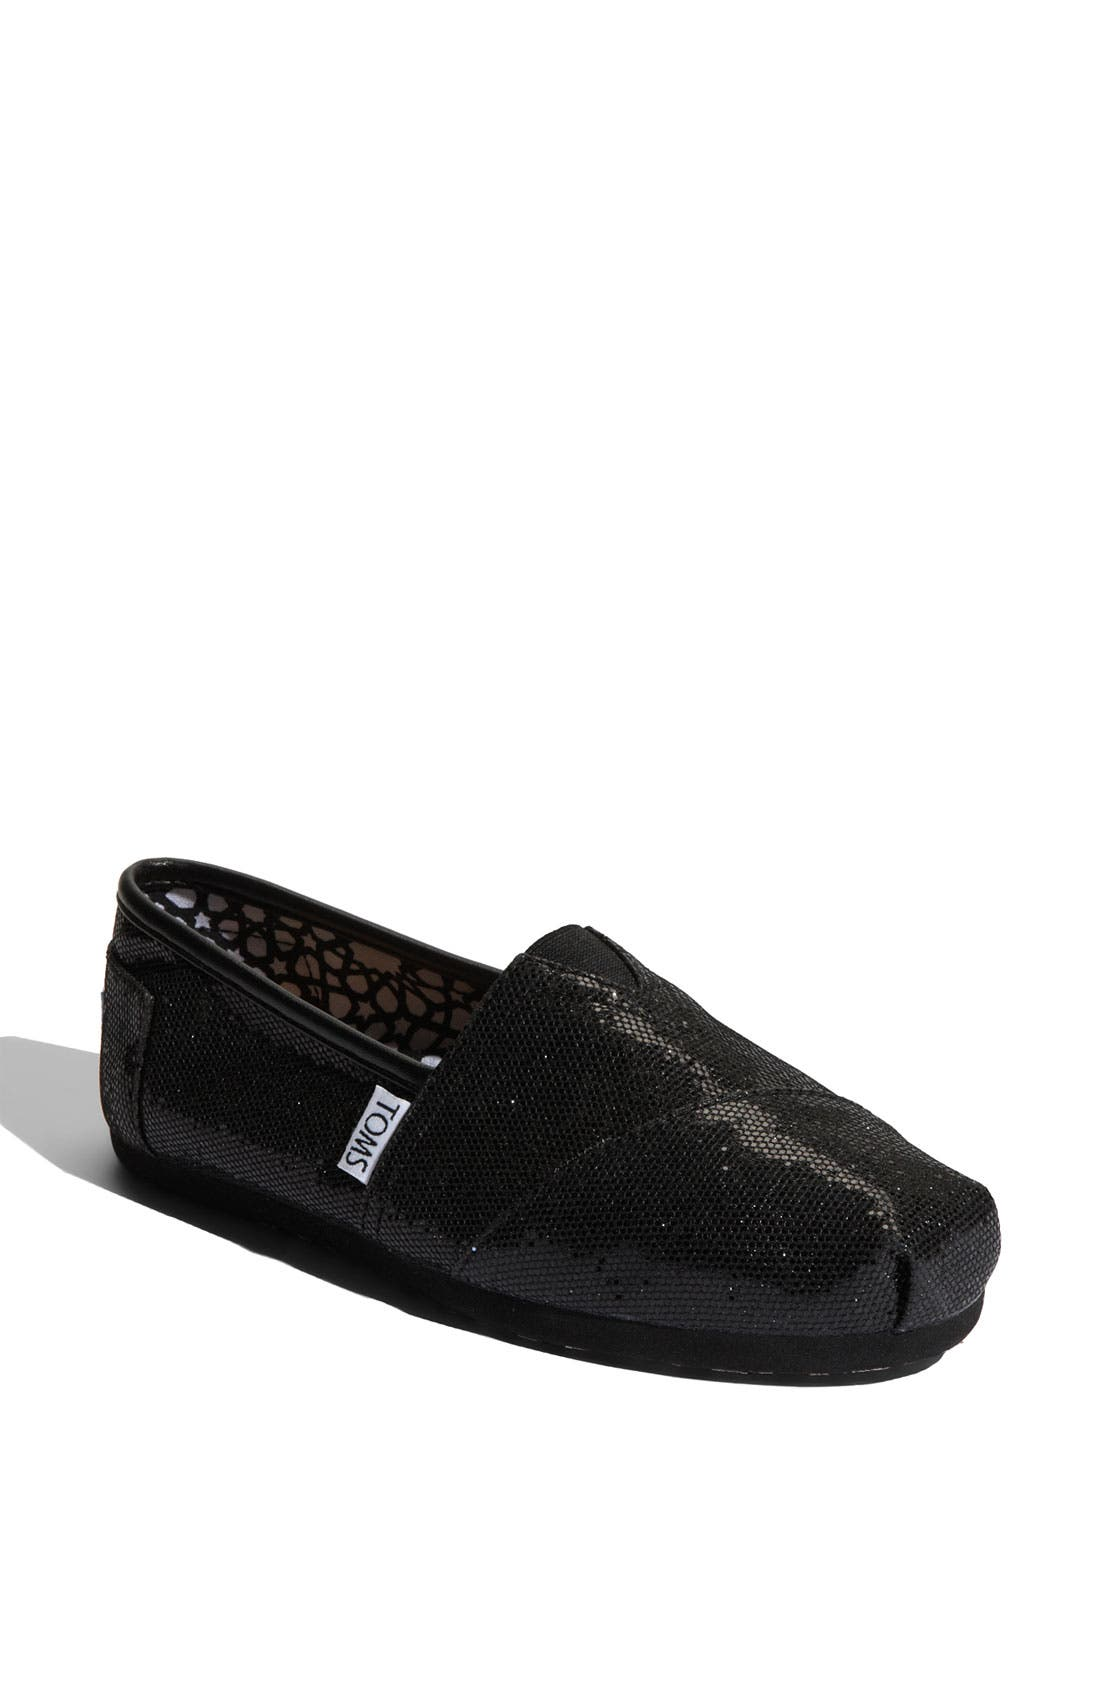 Alternate Image 1 Selected - TOMS 'Classic - Glitter' Slip-On (Women)